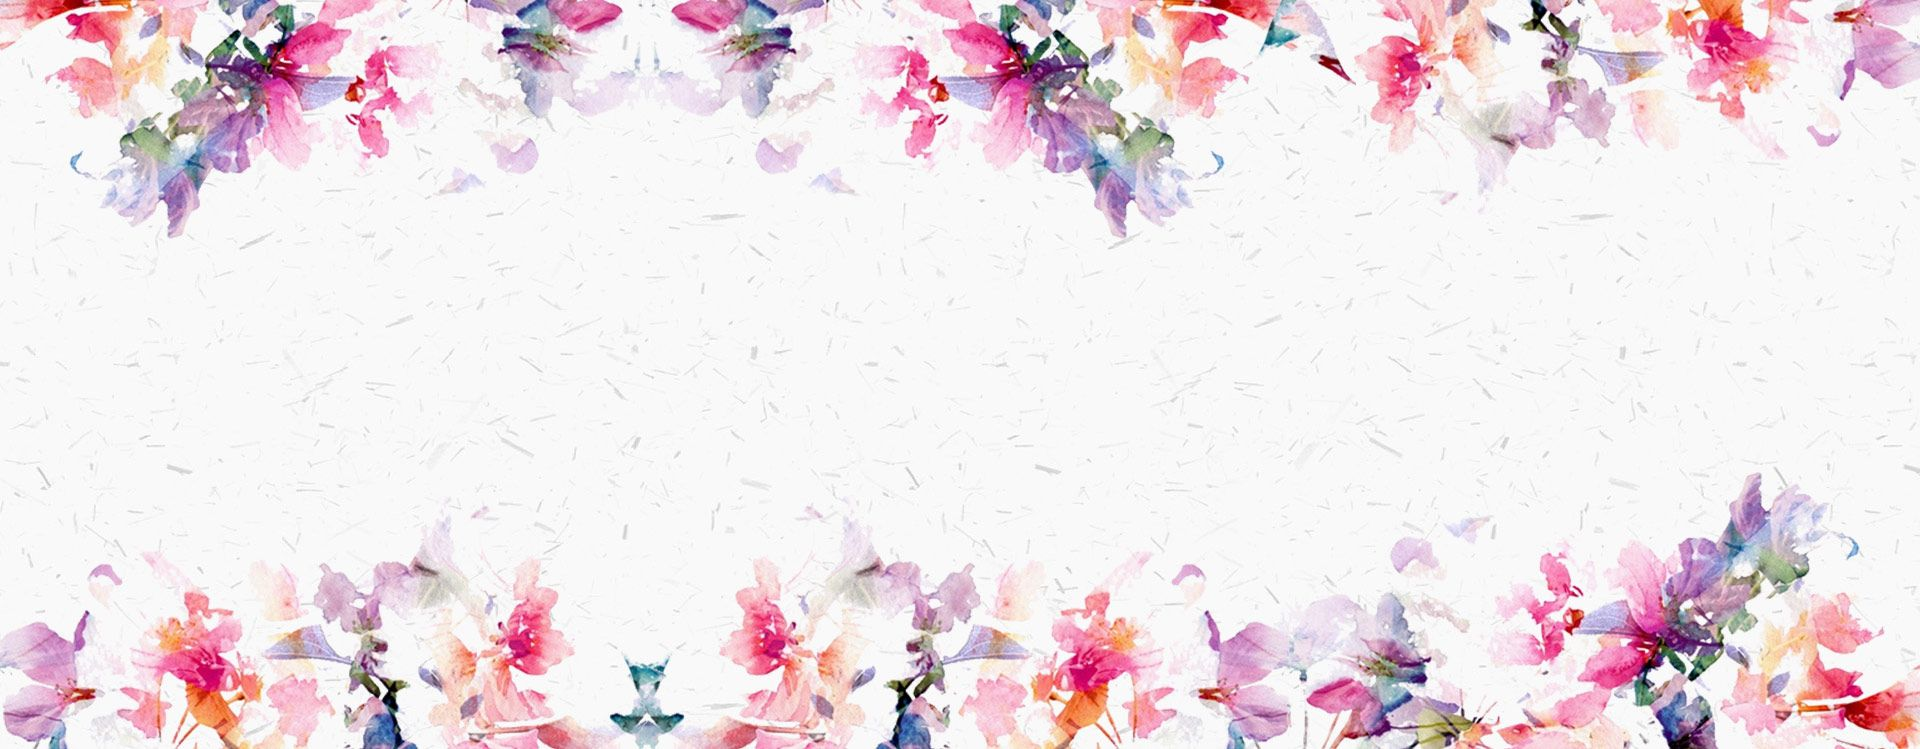 Hand Painted Watercolor Flowers Background Watercolor Flower